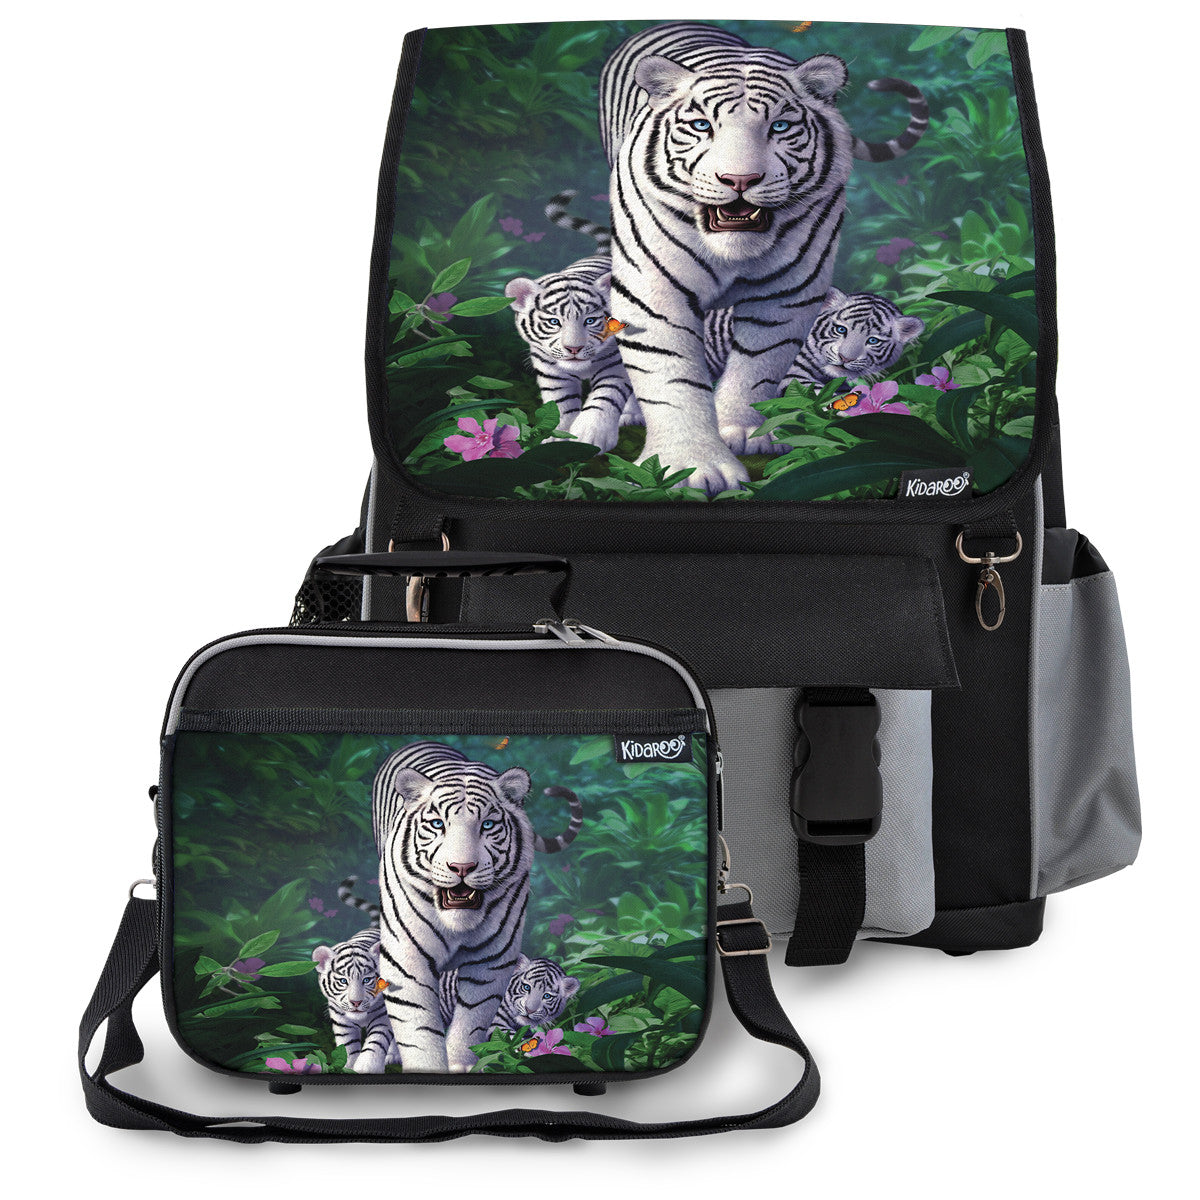 Kidaroo Black White Tiger & Cubs School Backpack & Lunchbox Set for Boys, Girls, Kids